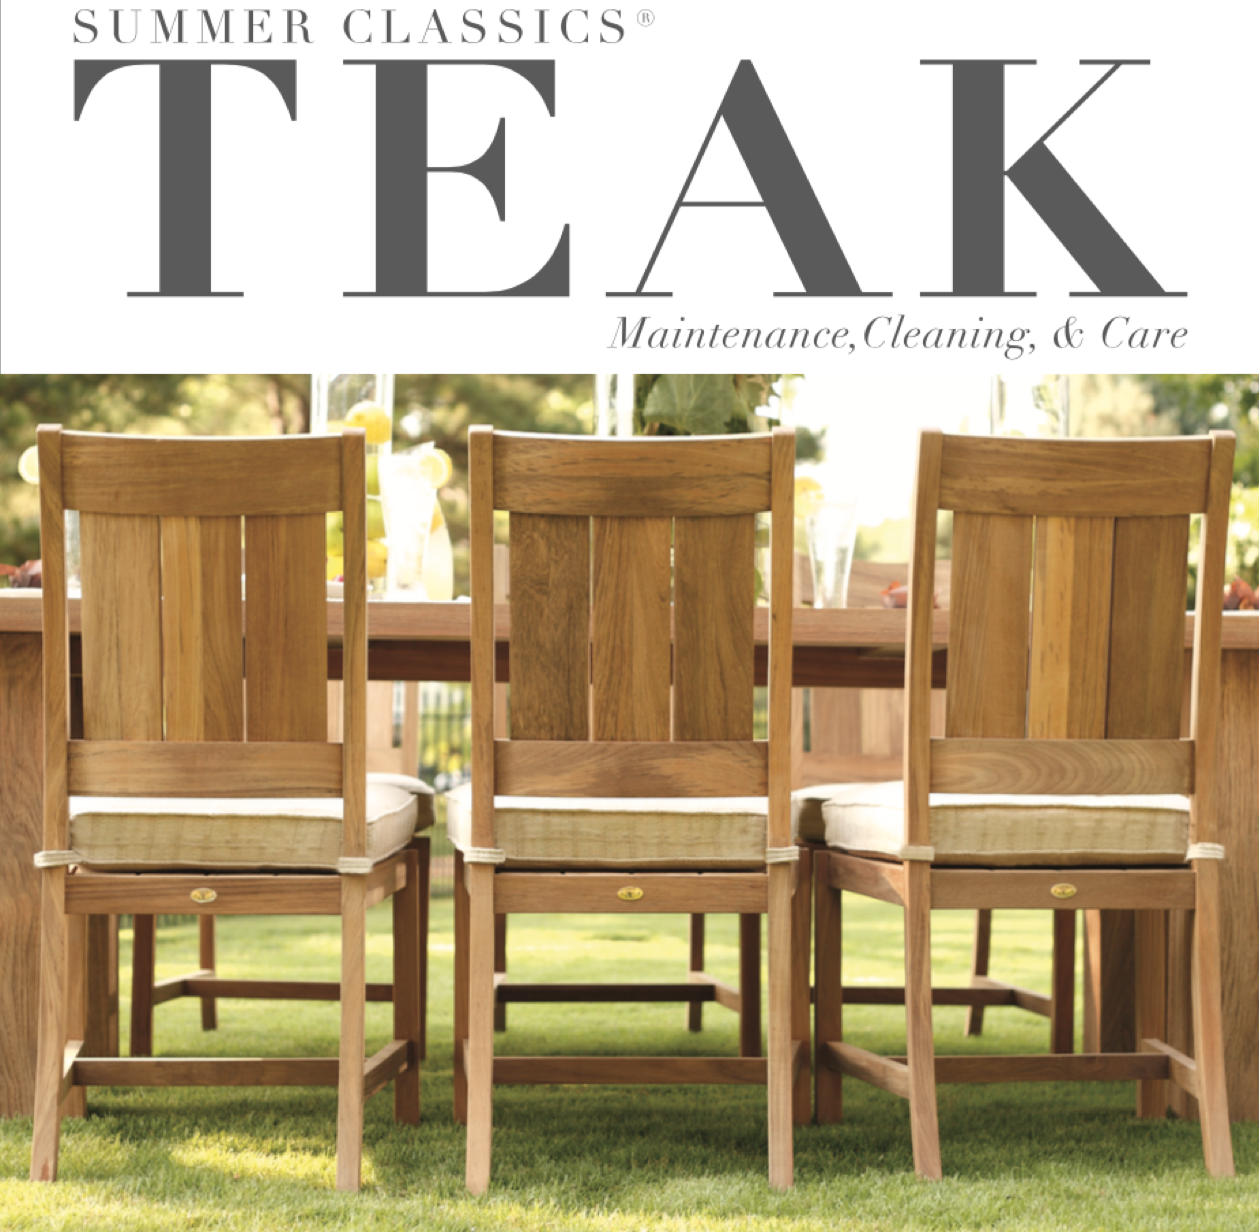 Teak Tweak Maintaining And Cleaning Teak Furniture Summer Classics